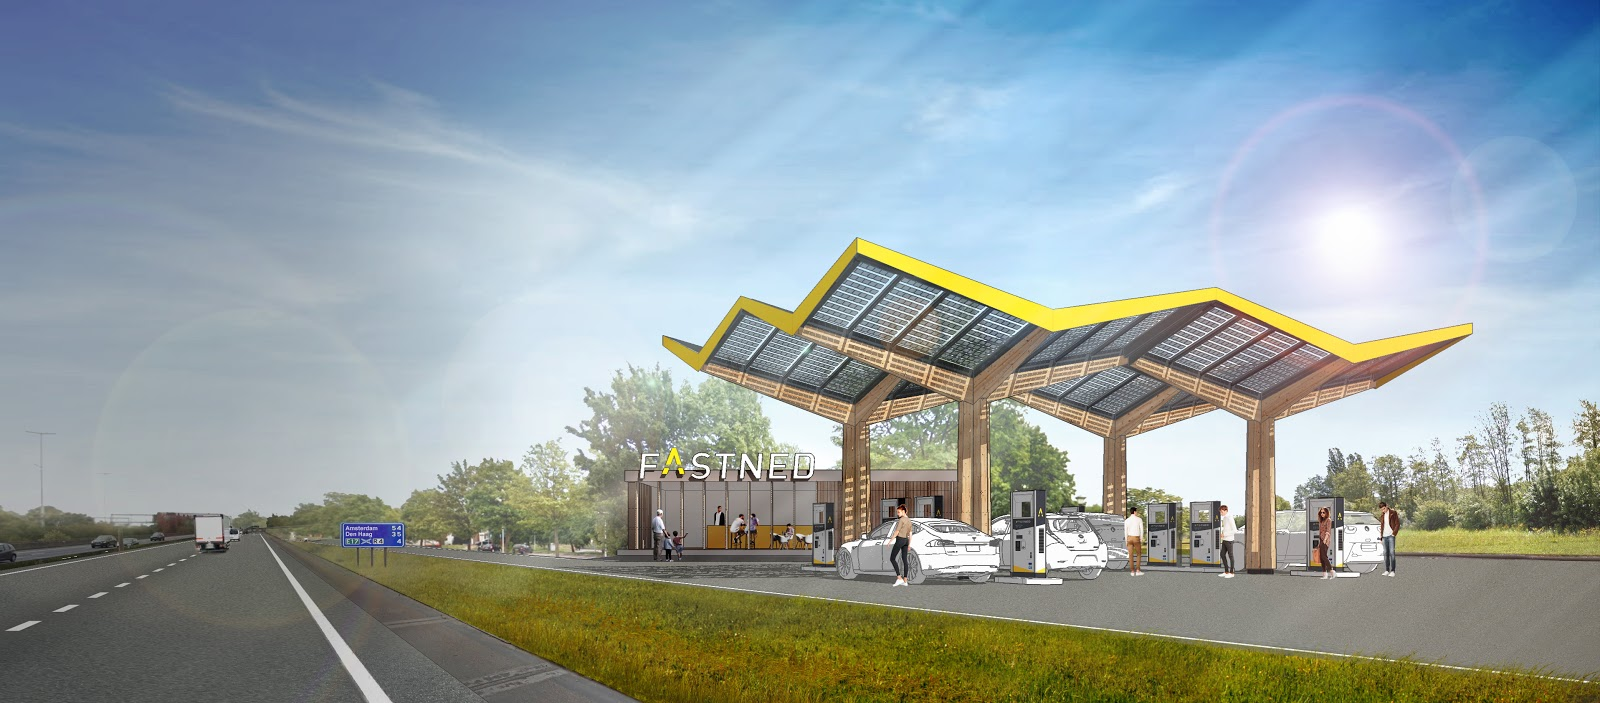 301570 render fastned station efc35f original 1548243779